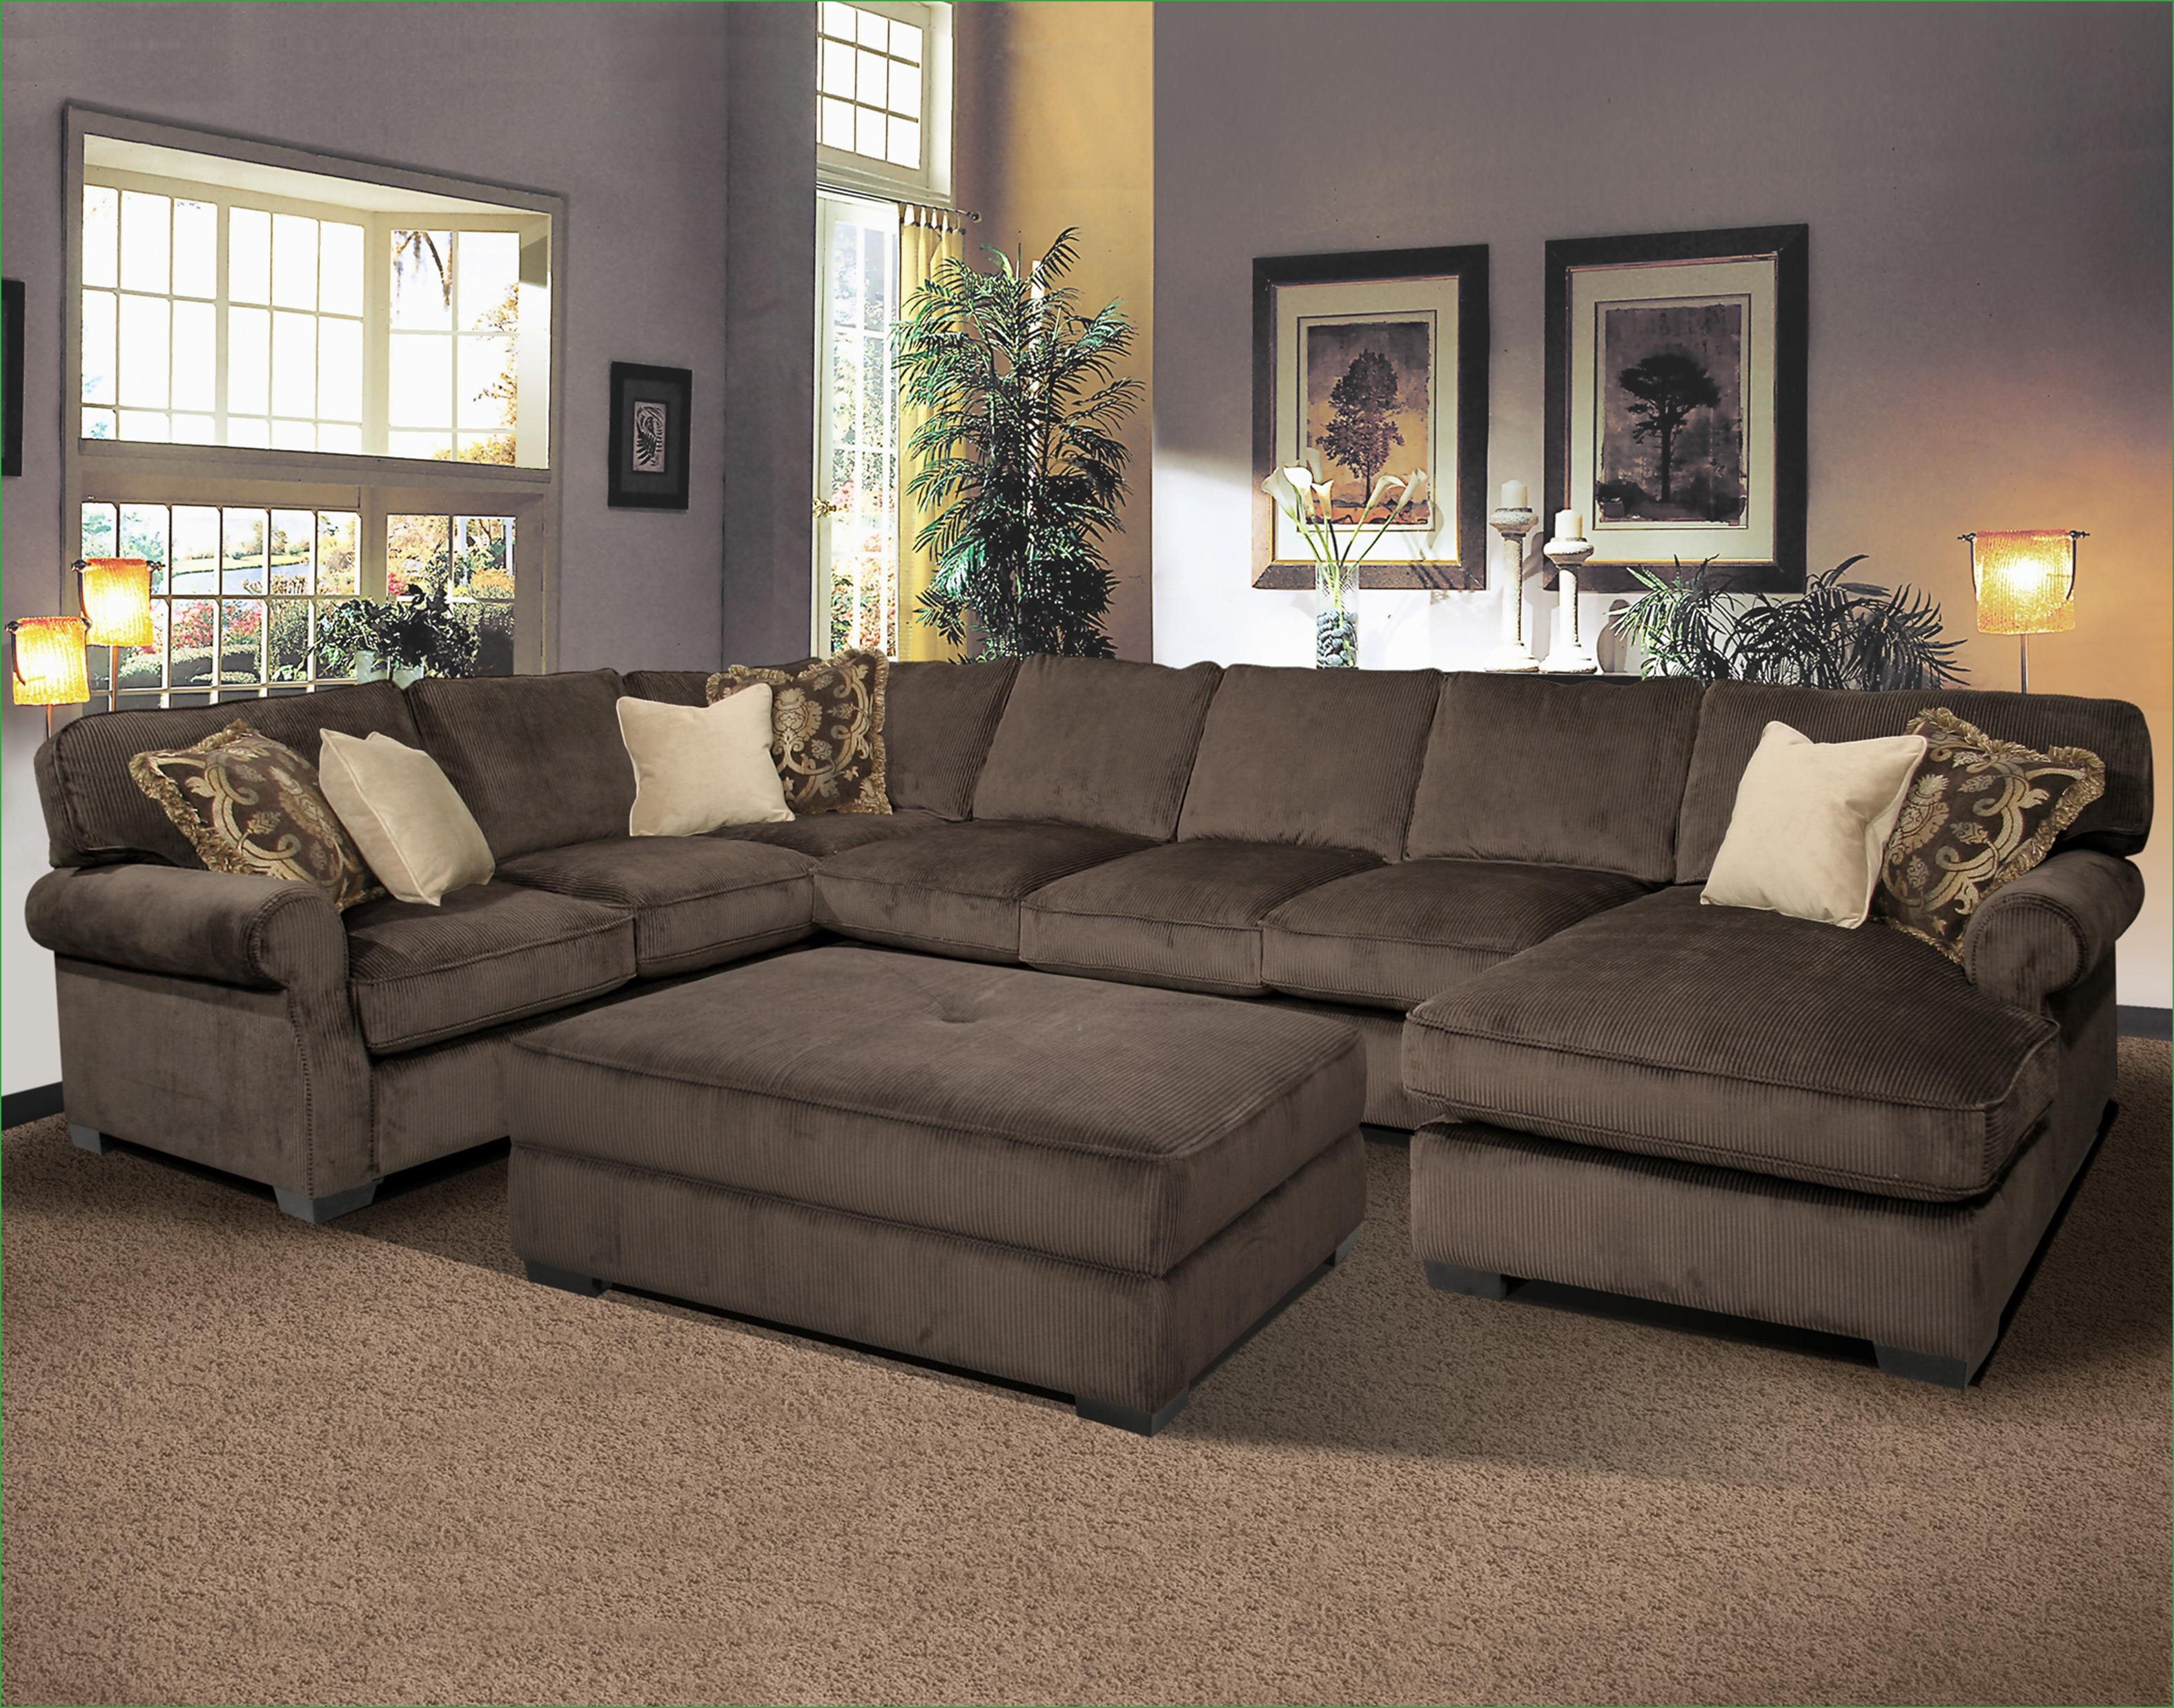 12 Best Ideas Of Bentley Sectional Leather Sofa : bentley sectional sofa - Sectionals, Sofas & Couches